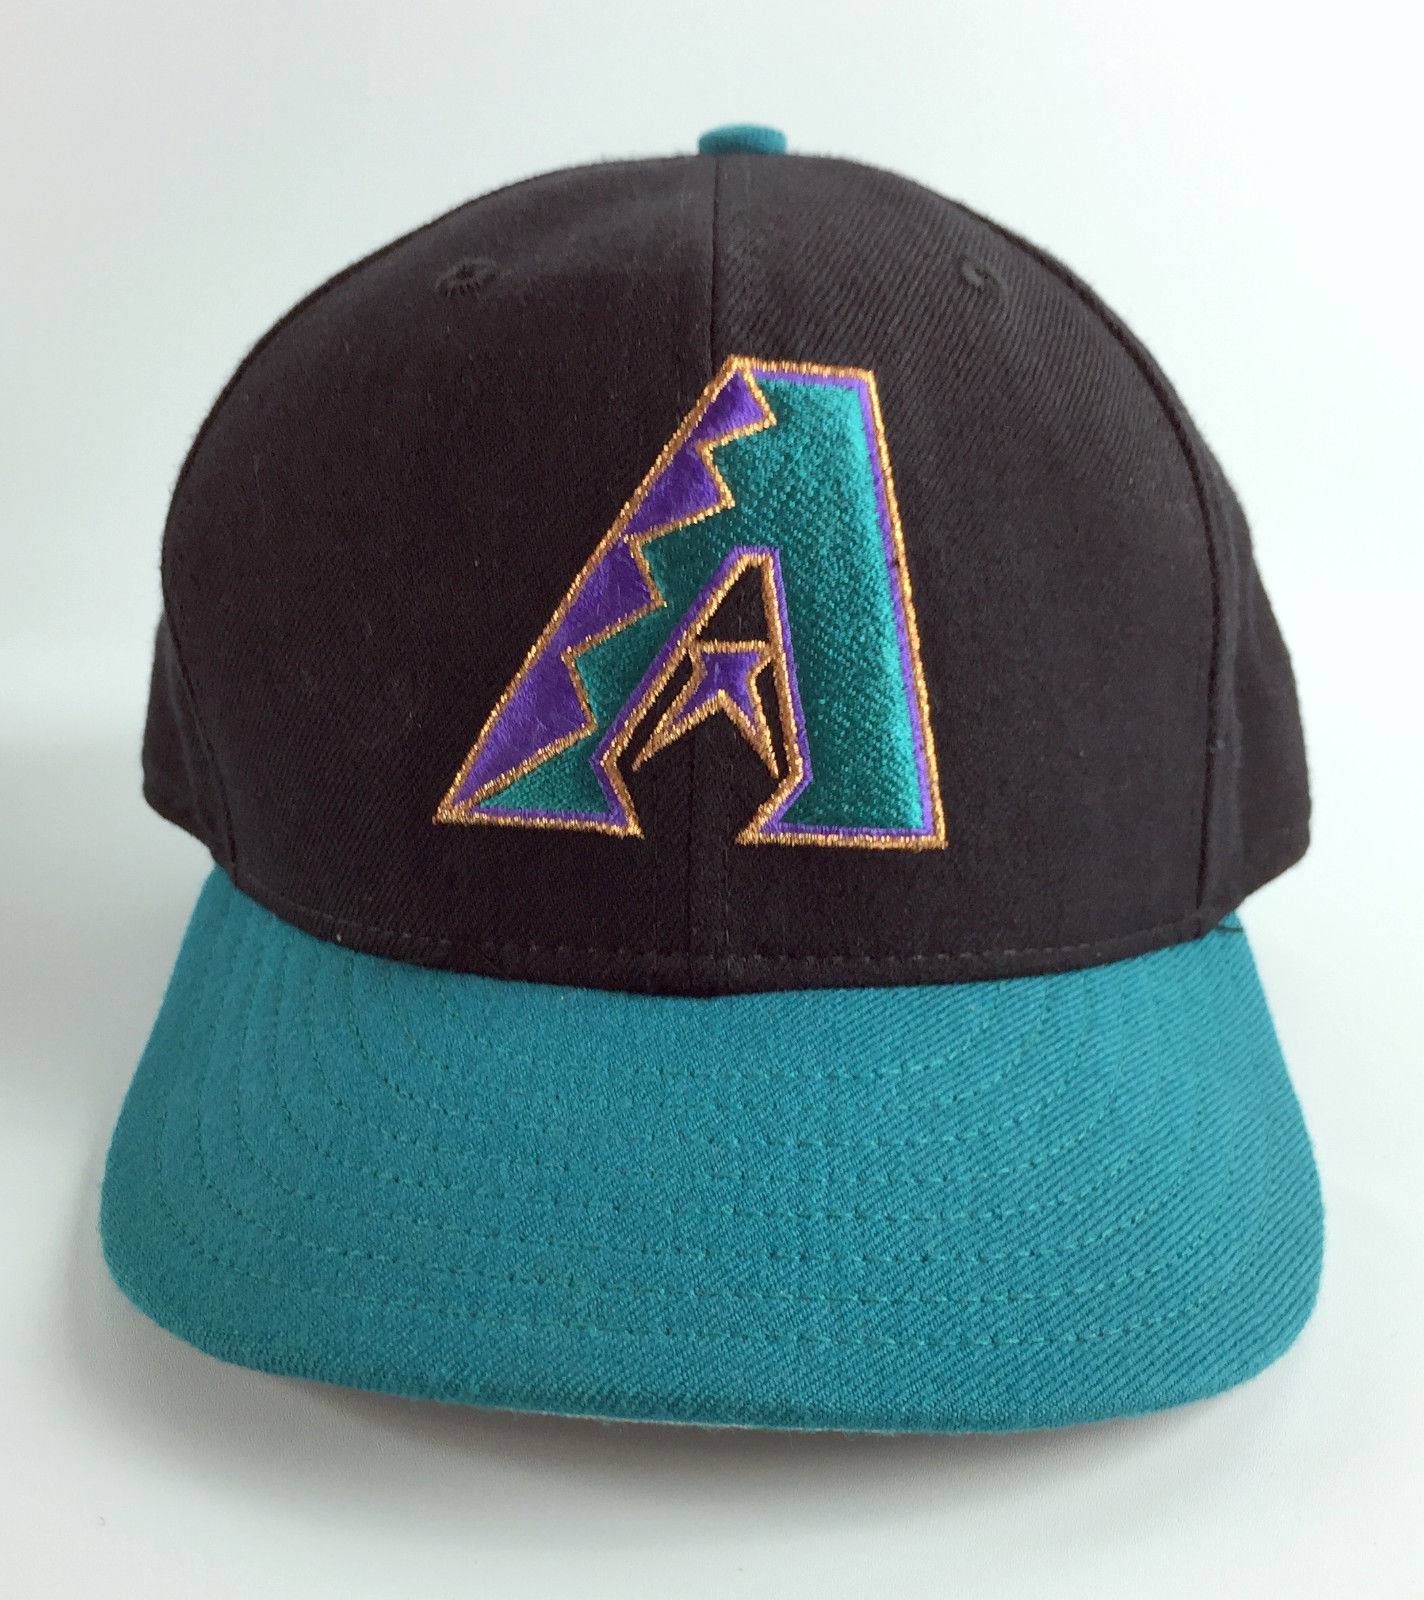 official photos f5e96 8d0d3 57. 57. Previous. Vintage Fitted Baseball Hat Arizona Diamondbacks New Era  5950 Model Teal - 7 3 8